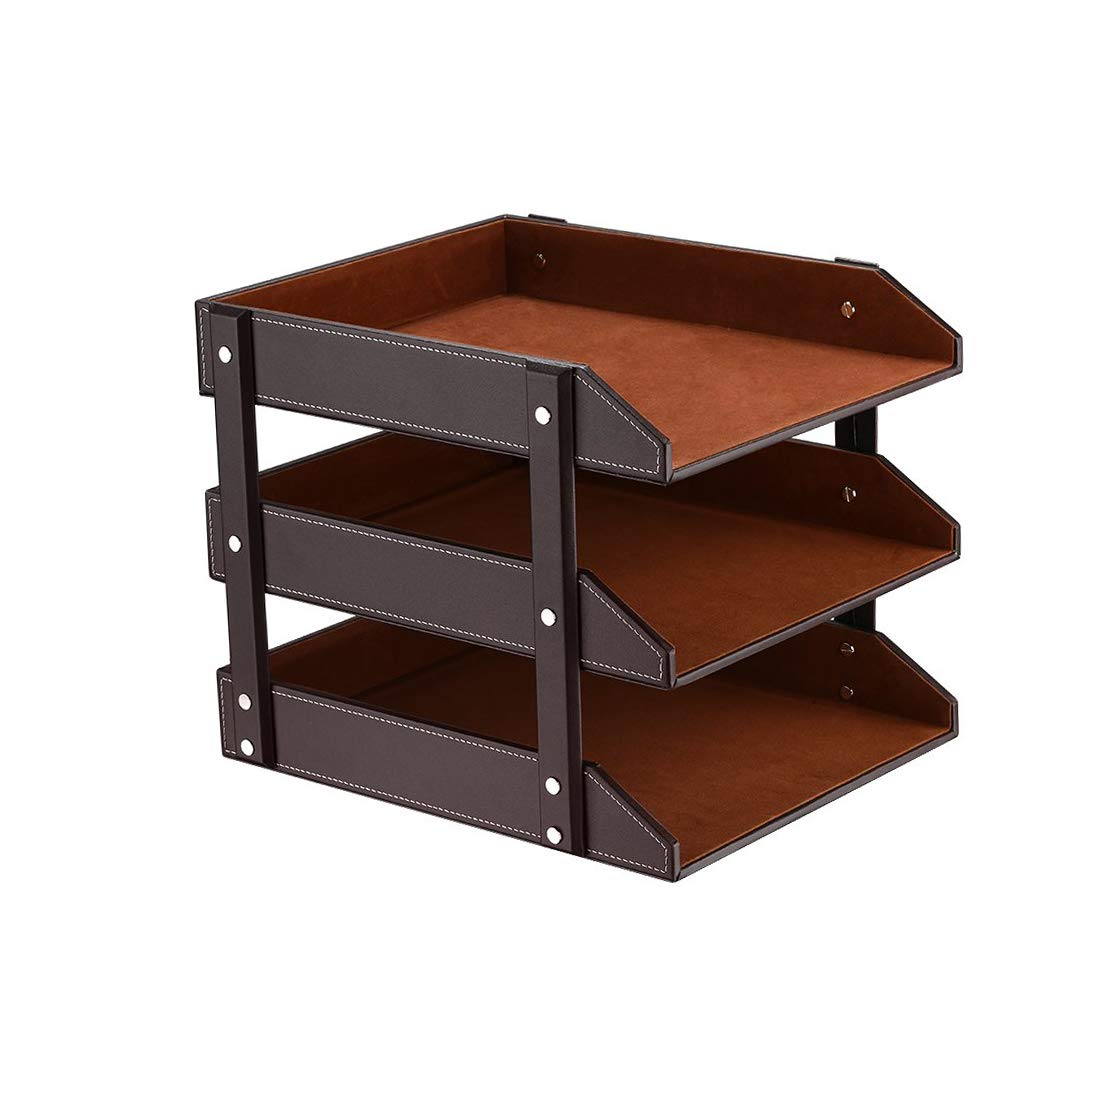 Desk 3 Tier File Document Letter Tray Organizer, Leather Office Supply Storage Holder for Desktop Storage Paper/Stationery/Magazine/Newspaper/Mail/Sundries (Brown) by PUSU